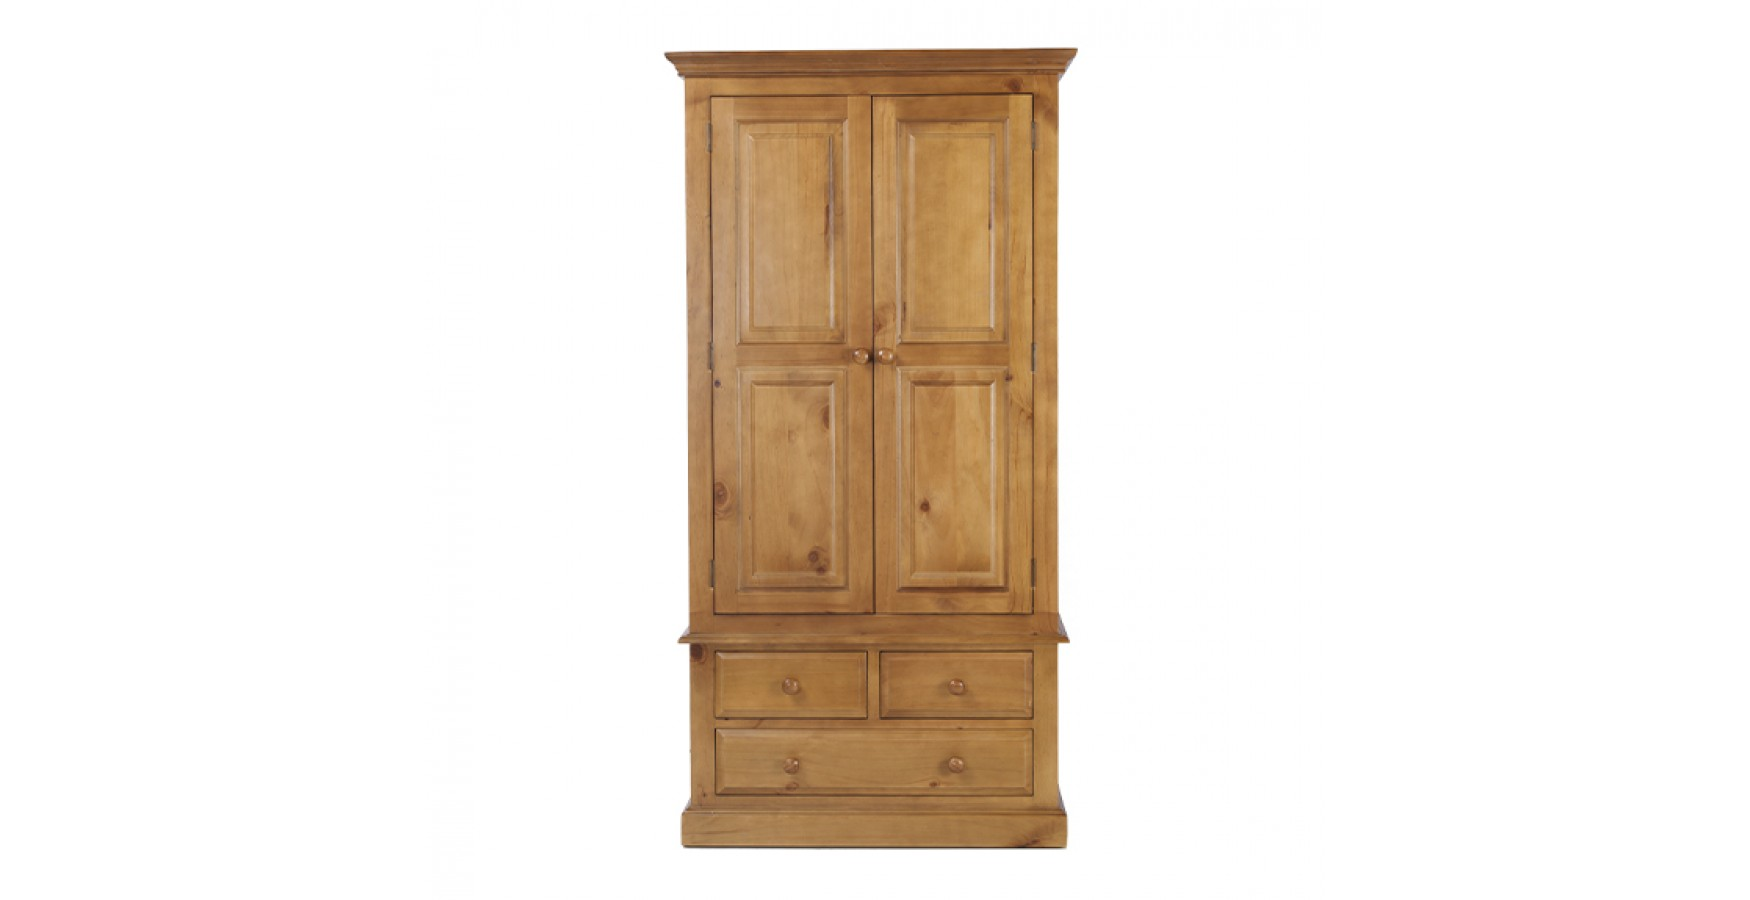 Country Pine Gents Double Wardrobe Lifestyle Furniture Uk